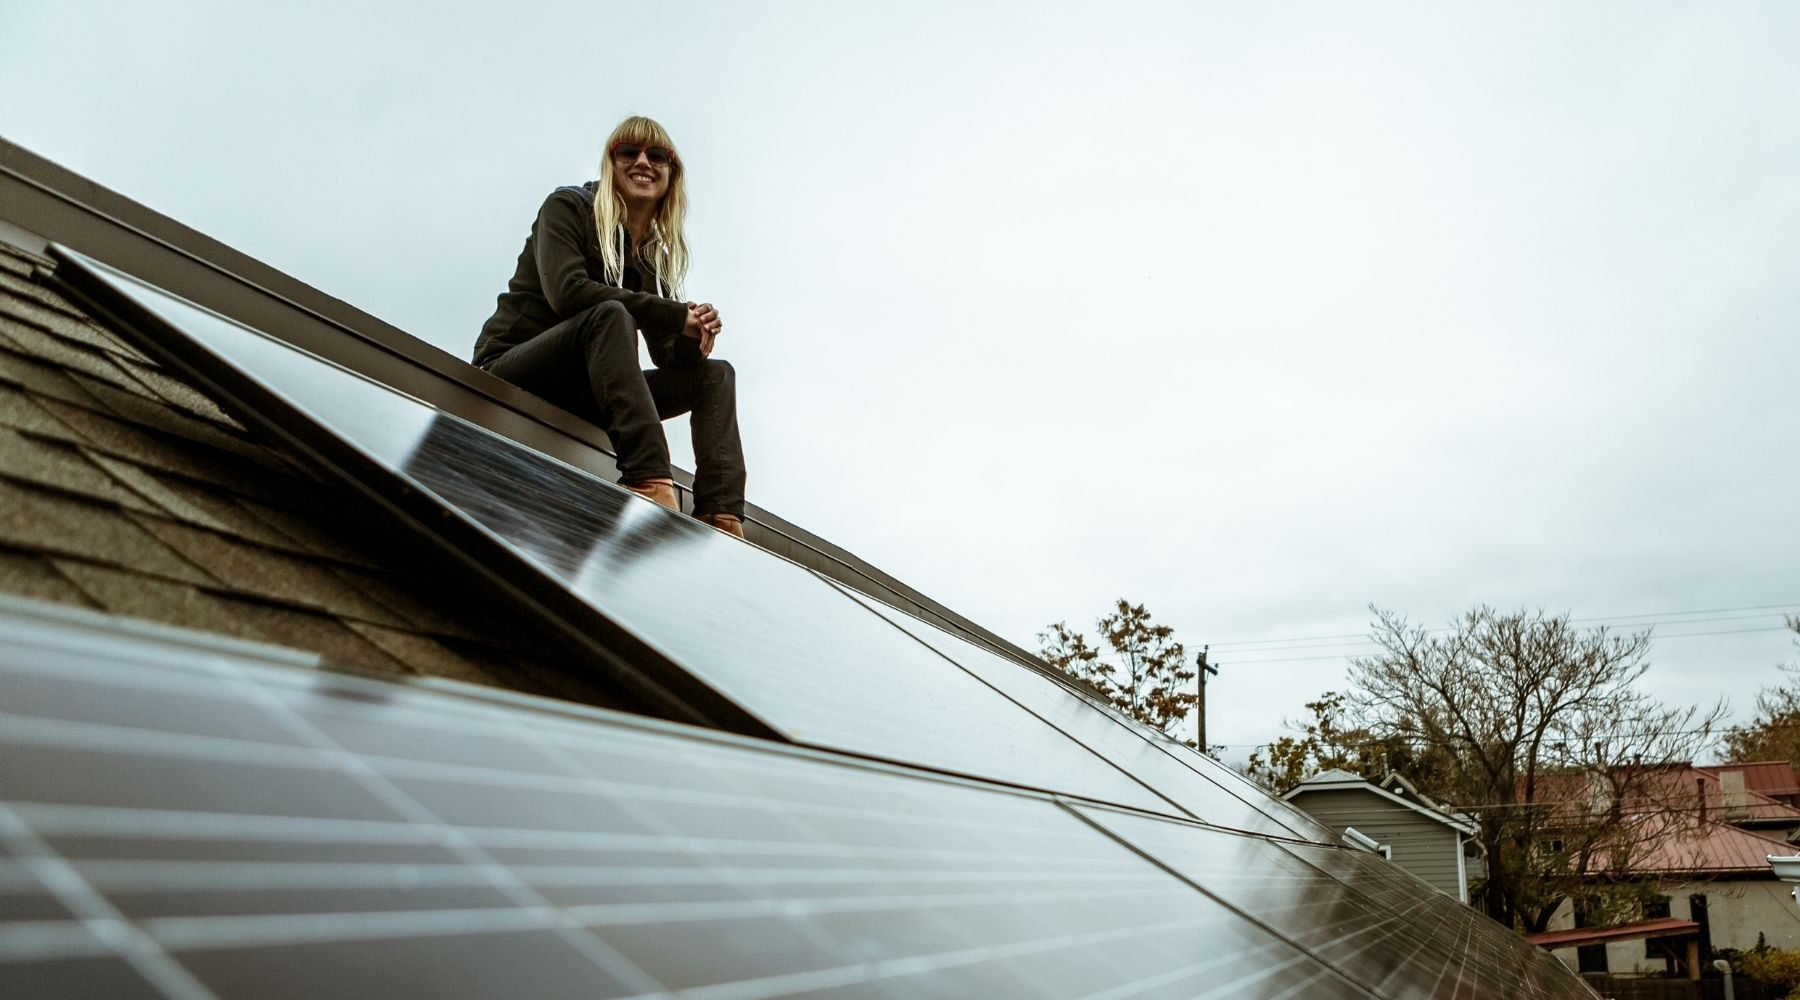 5 reasons you should think about installing solar this year